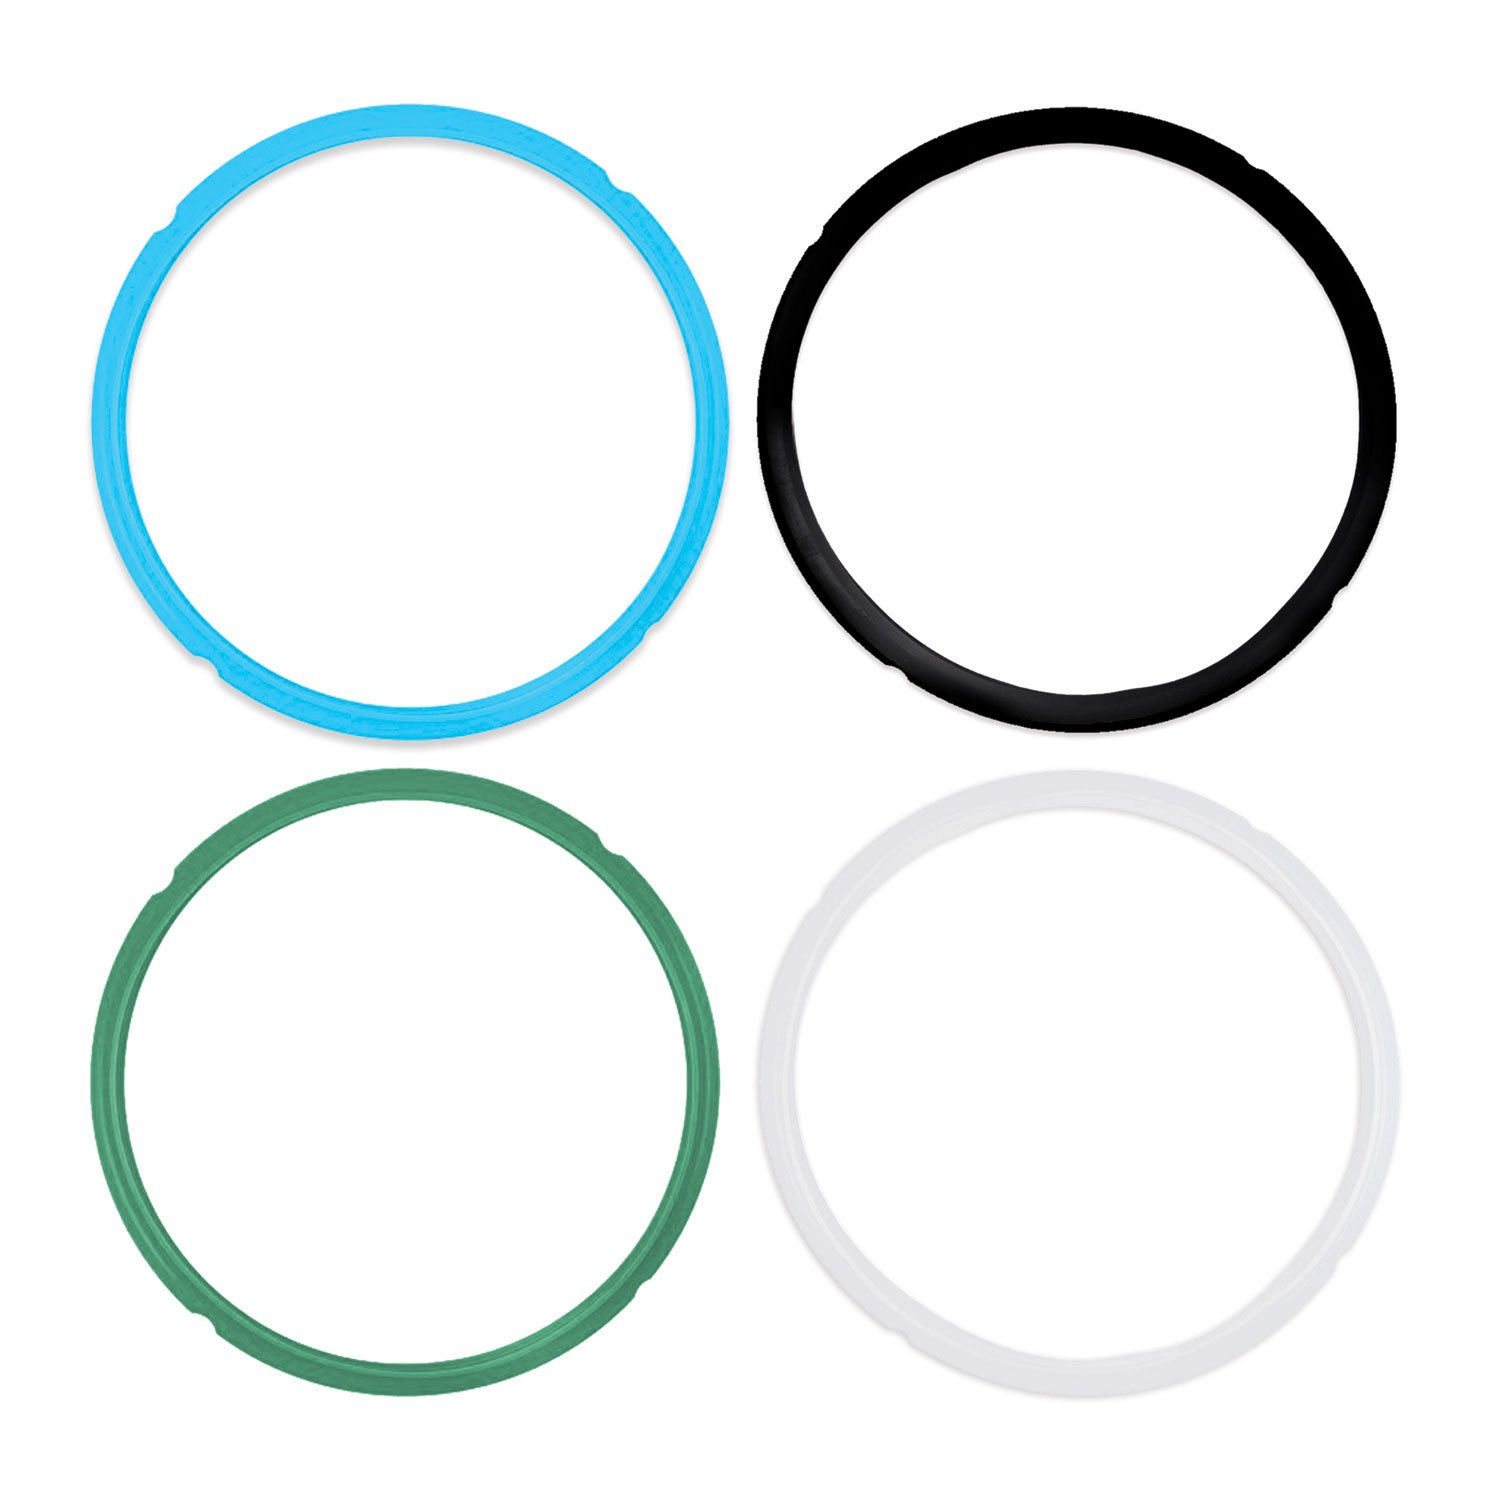 Pack of 4 Silicone Sealing Rings for Instant Pot 5 /& 6 Quart IP-LUX60 IP-LUX50 Smart-60 Fits IP-DUO60 IP-CSG60 and IP-CSG50 IP-DUO50